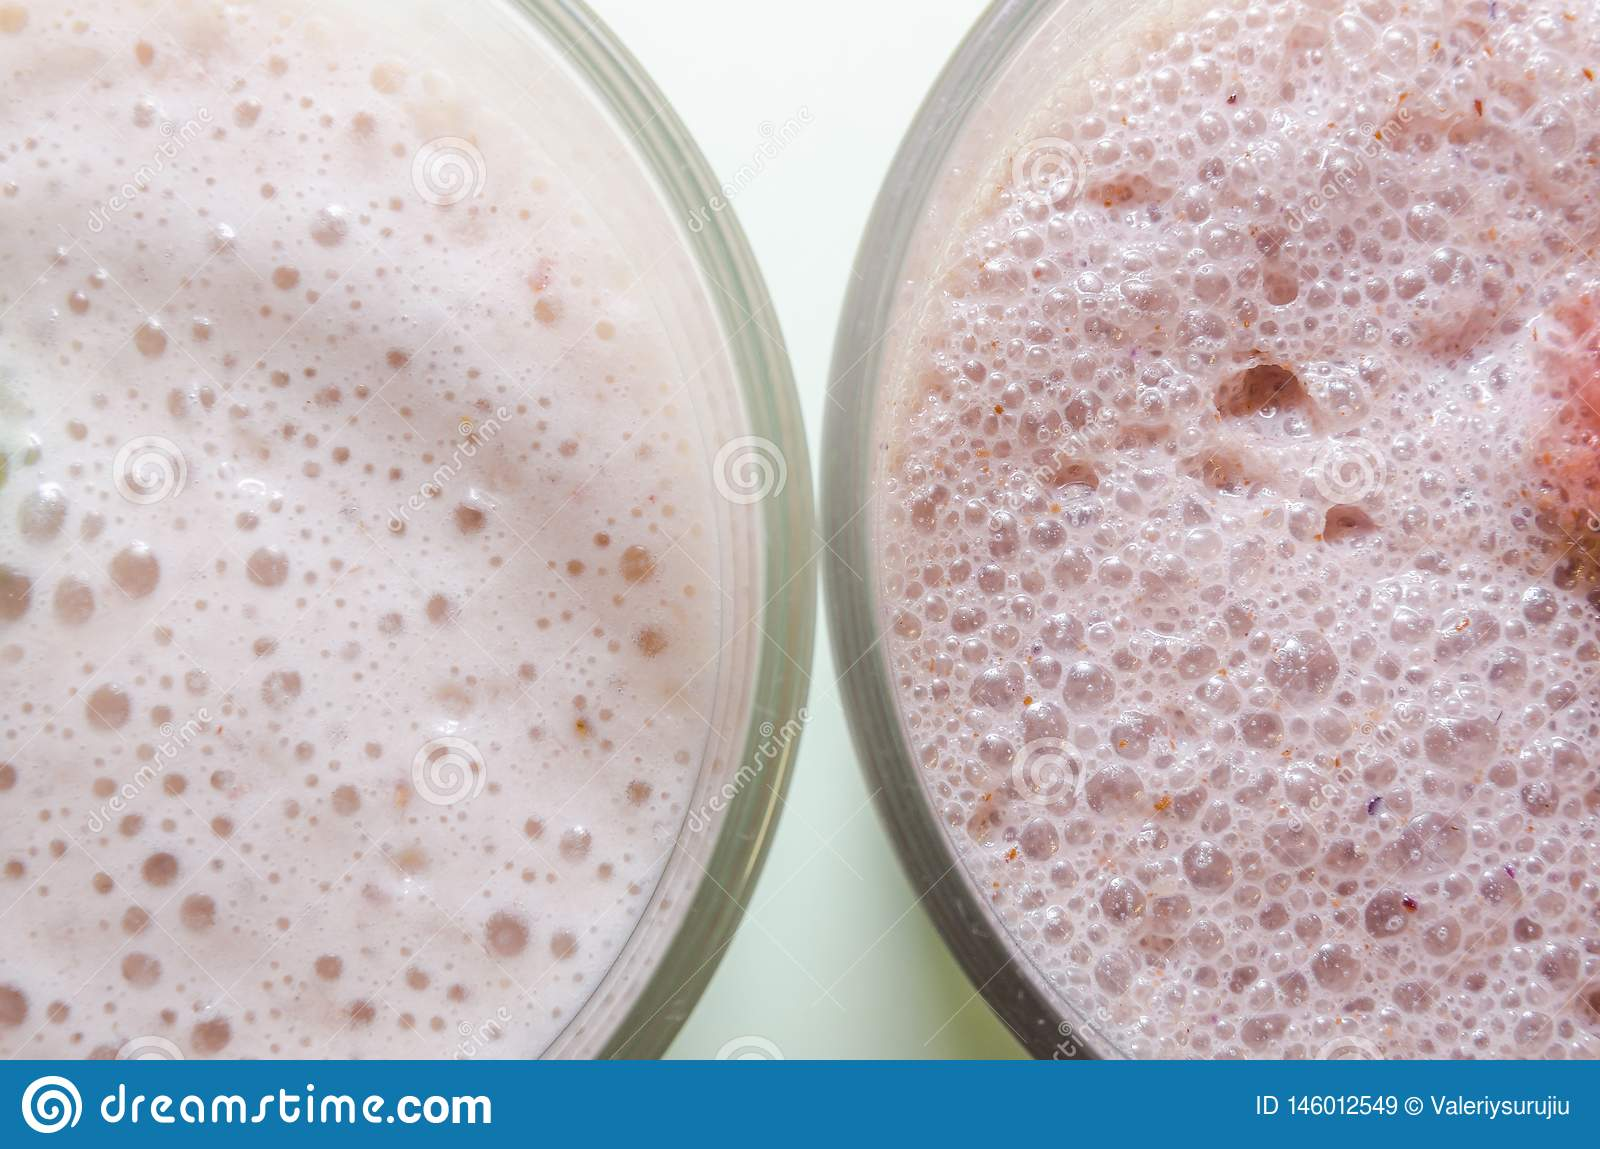 Two milkshakes with banana and strawberry